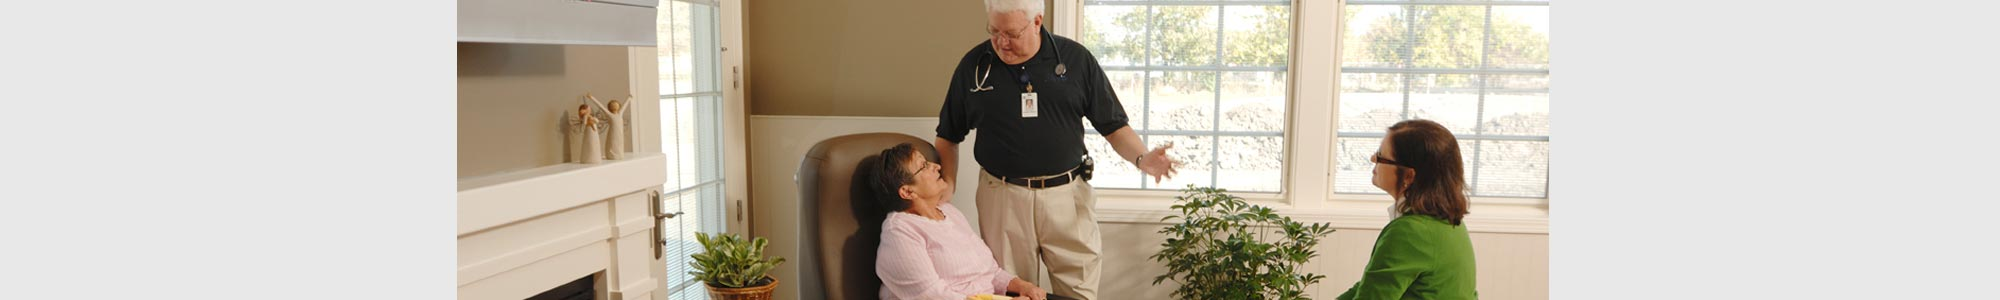 Home health care in Fort Dodge, IA